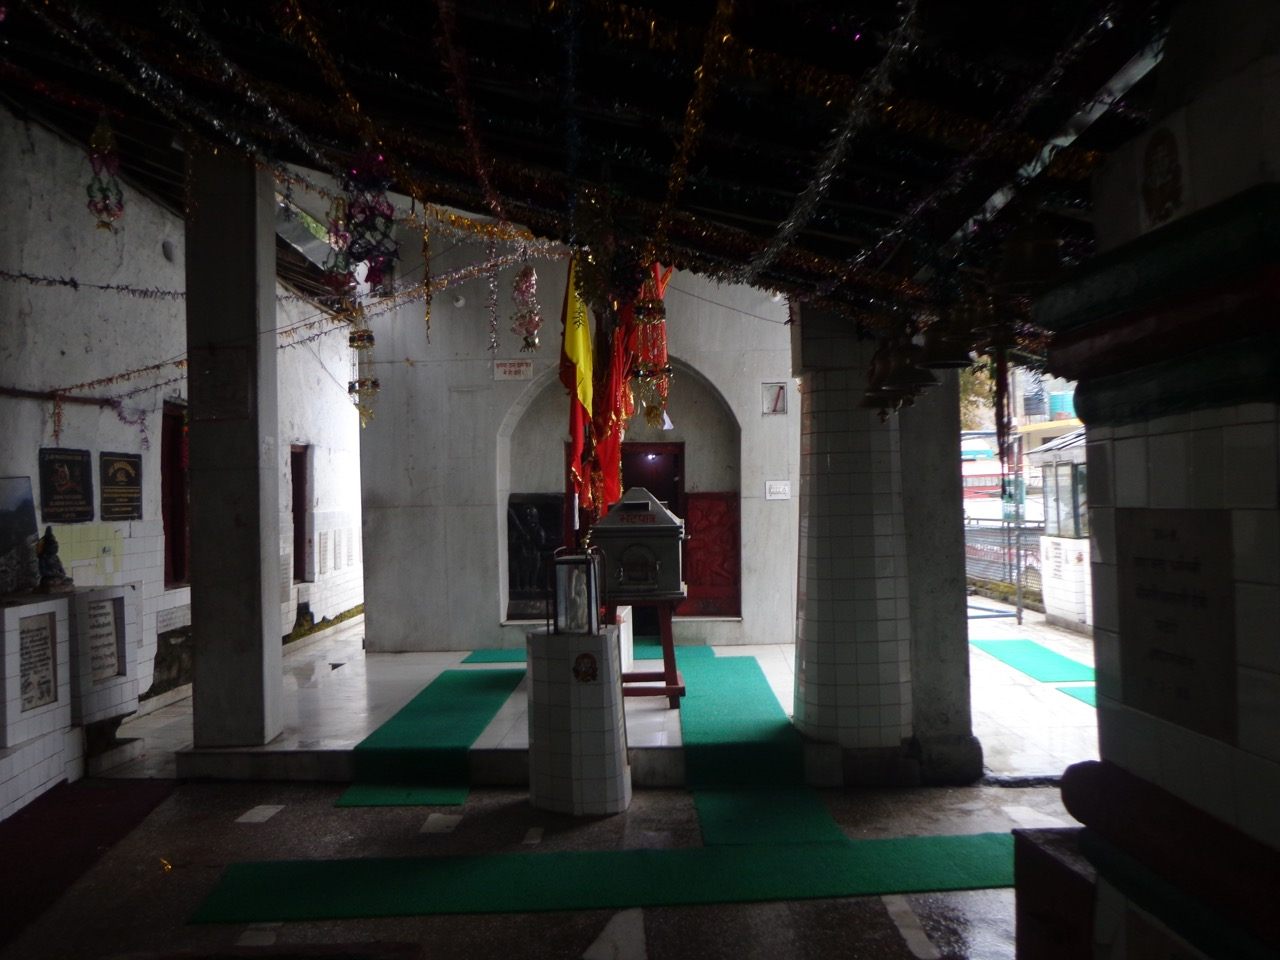 The inside of the temple has smaller rooms dedicated to various gods and sants